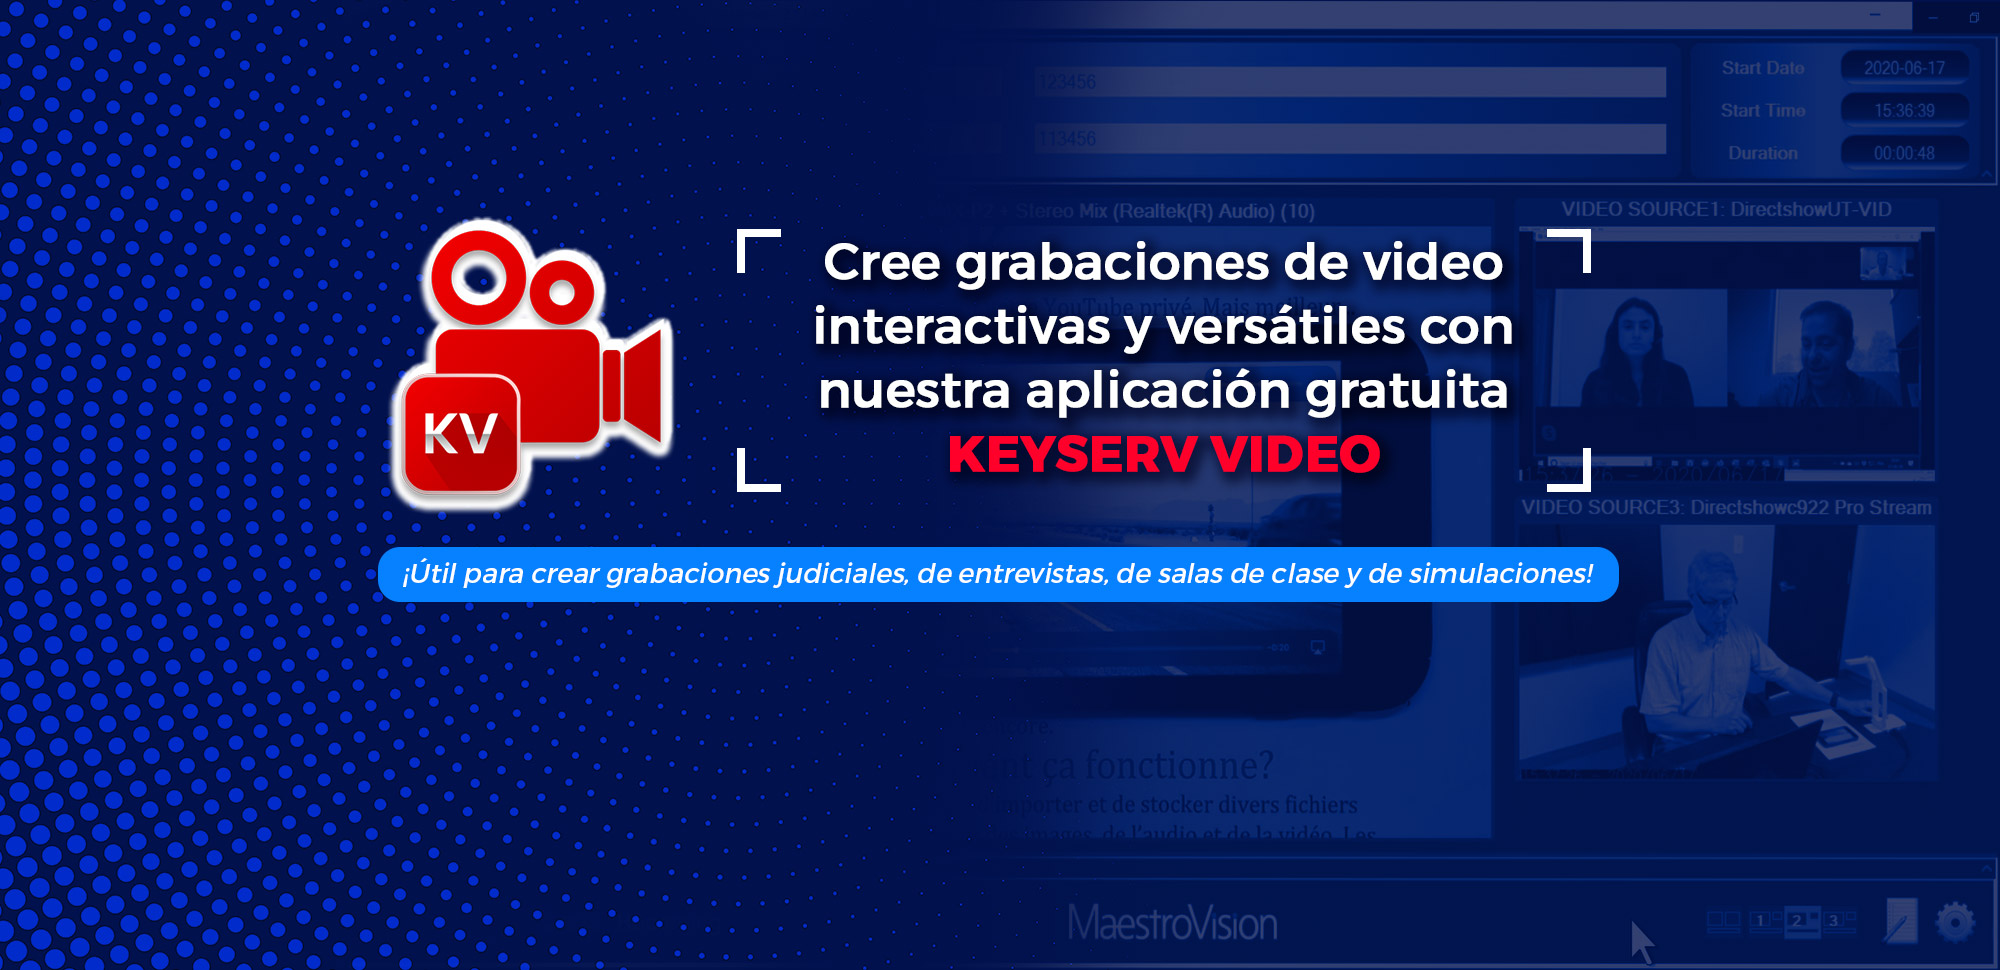 promo_keyserv_video